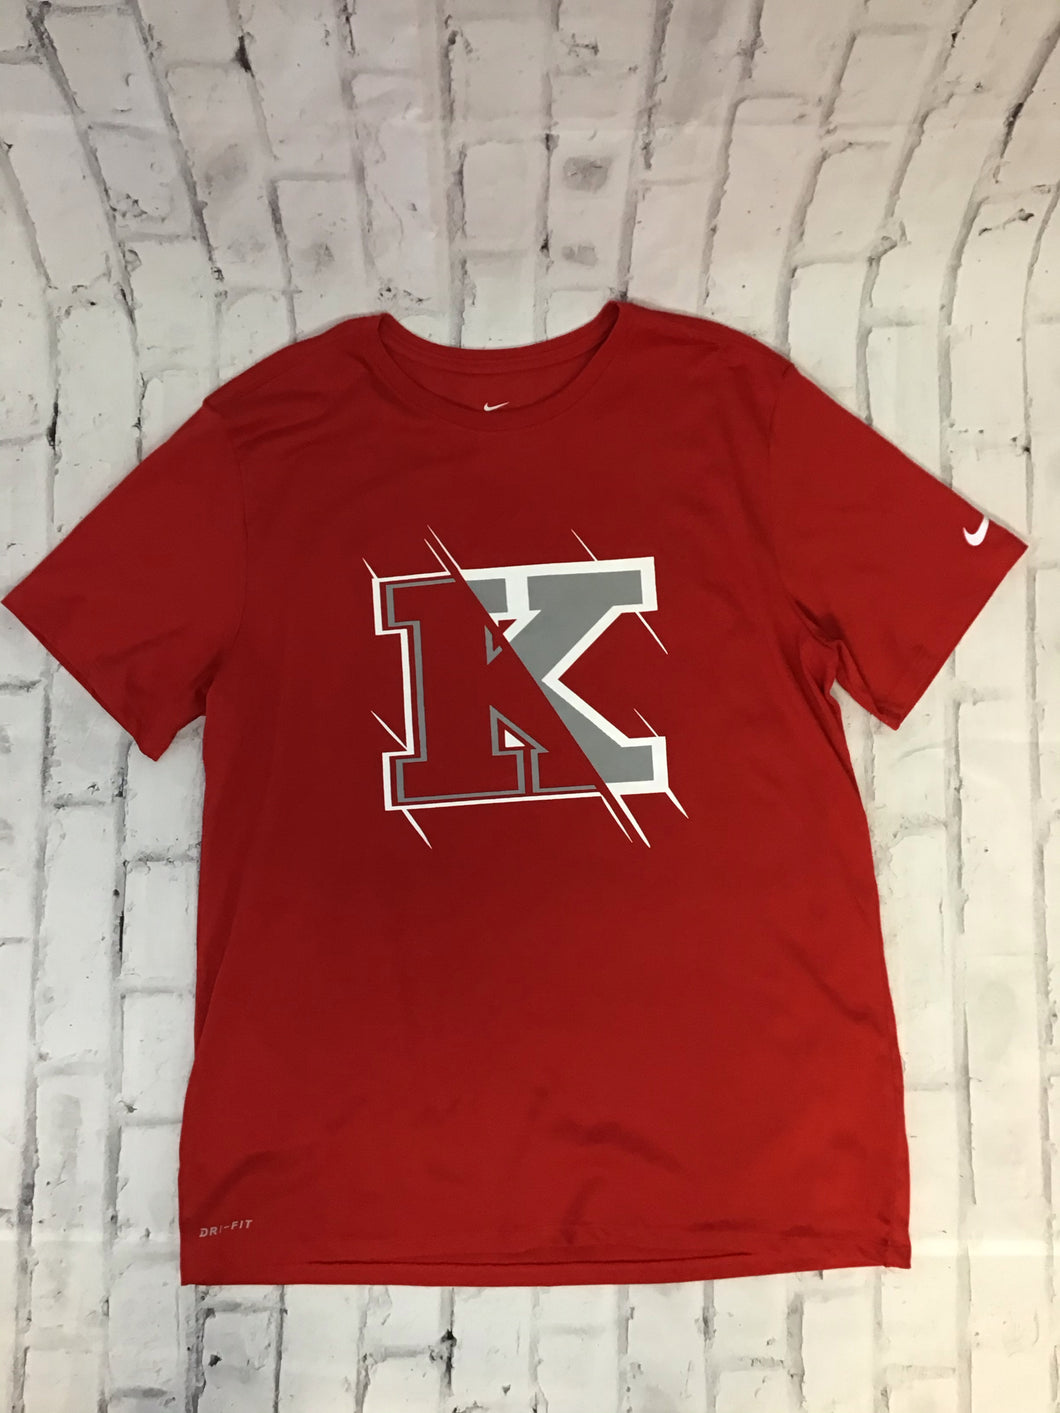 Kiefer Trojans Dry Fit Short Sleeve Tee